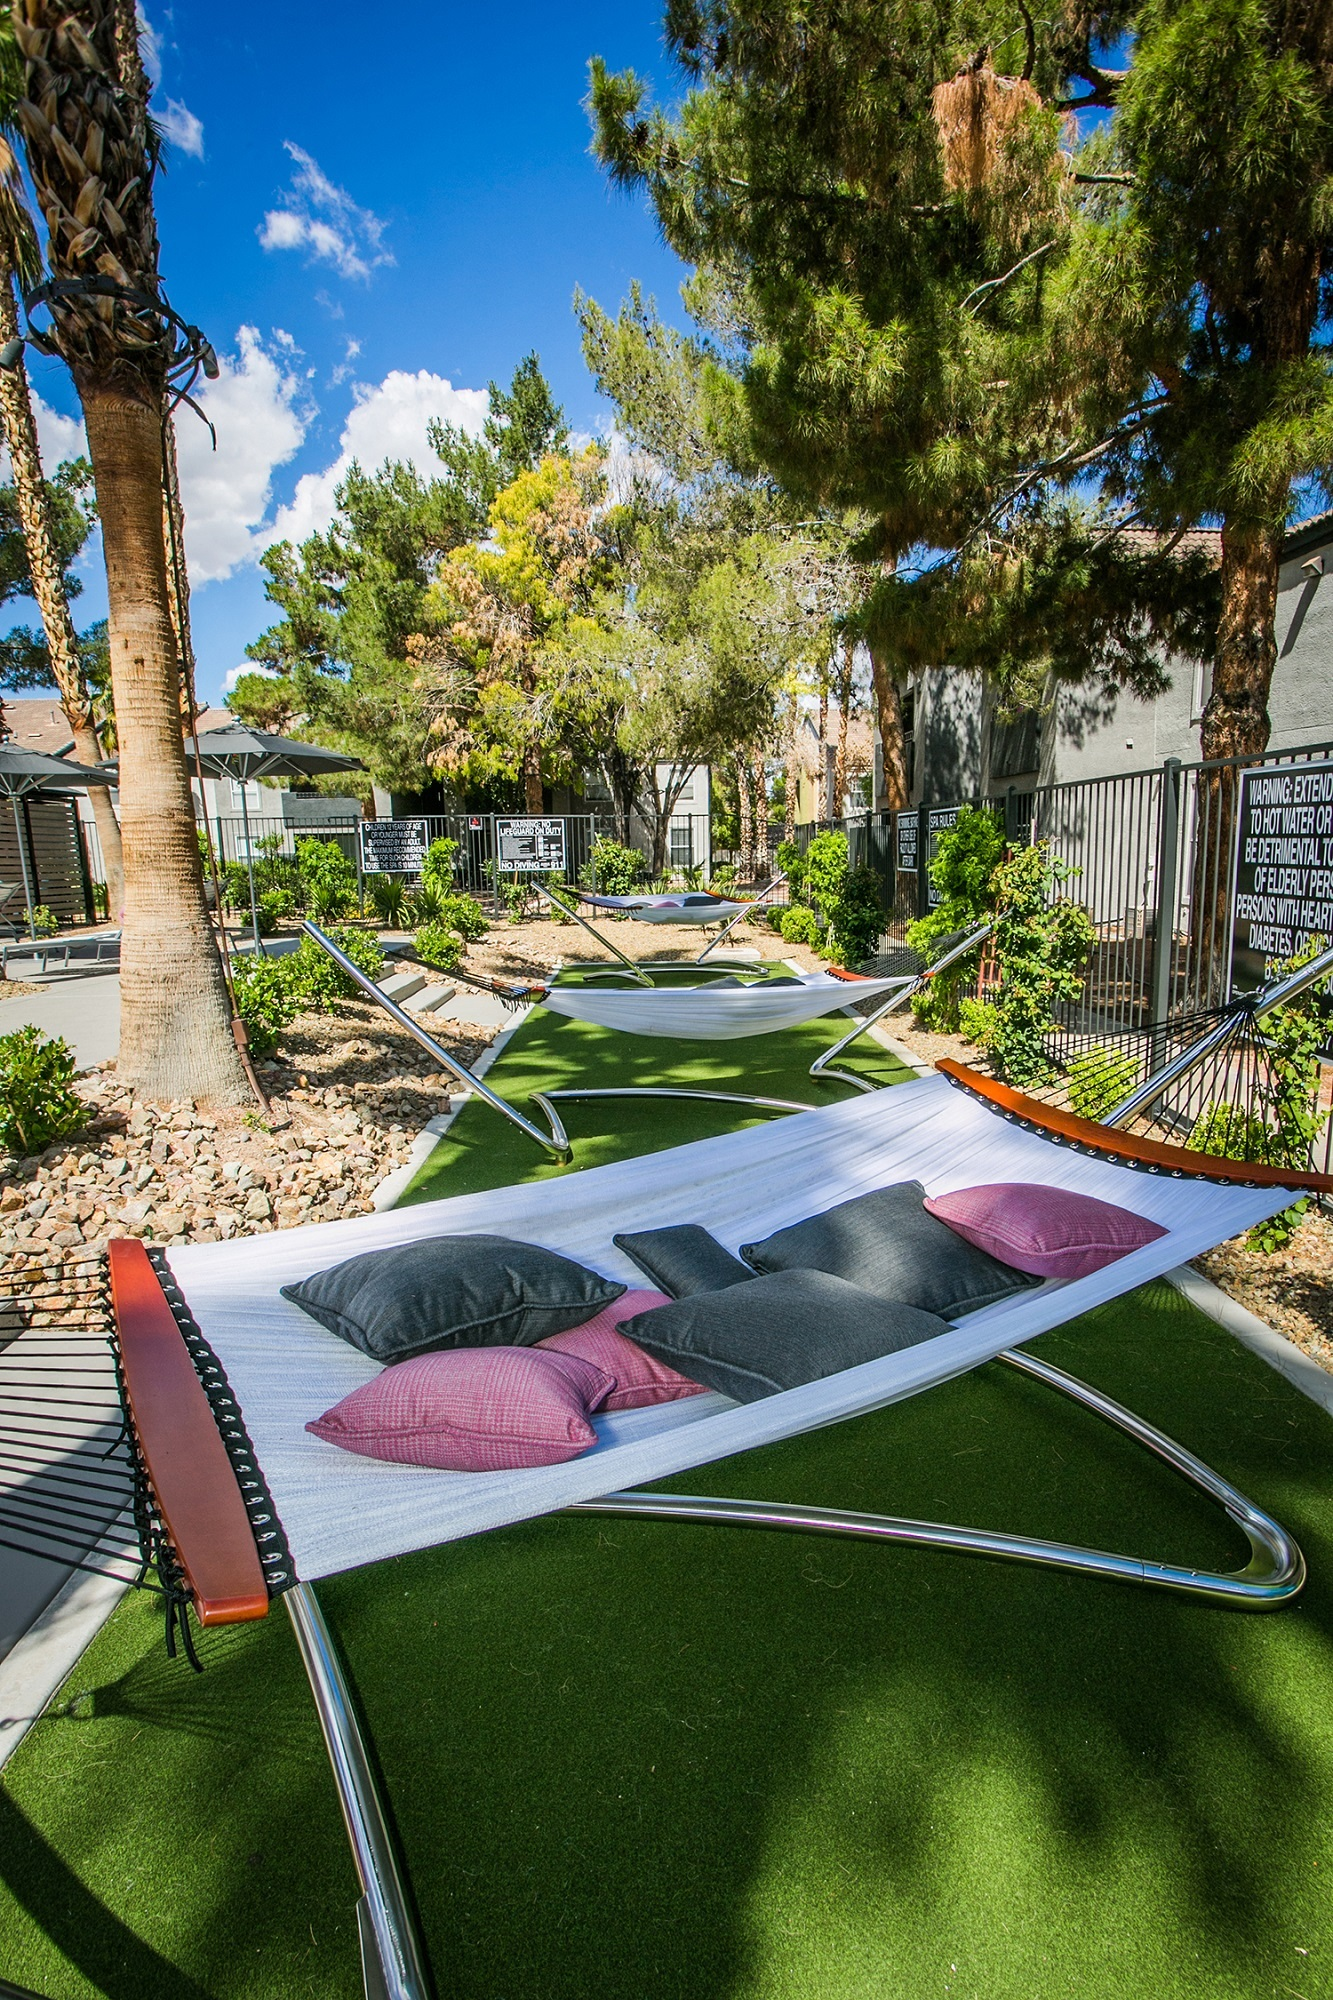 Villa Serena Apartments Hammock Pillows Henderson, Nevada